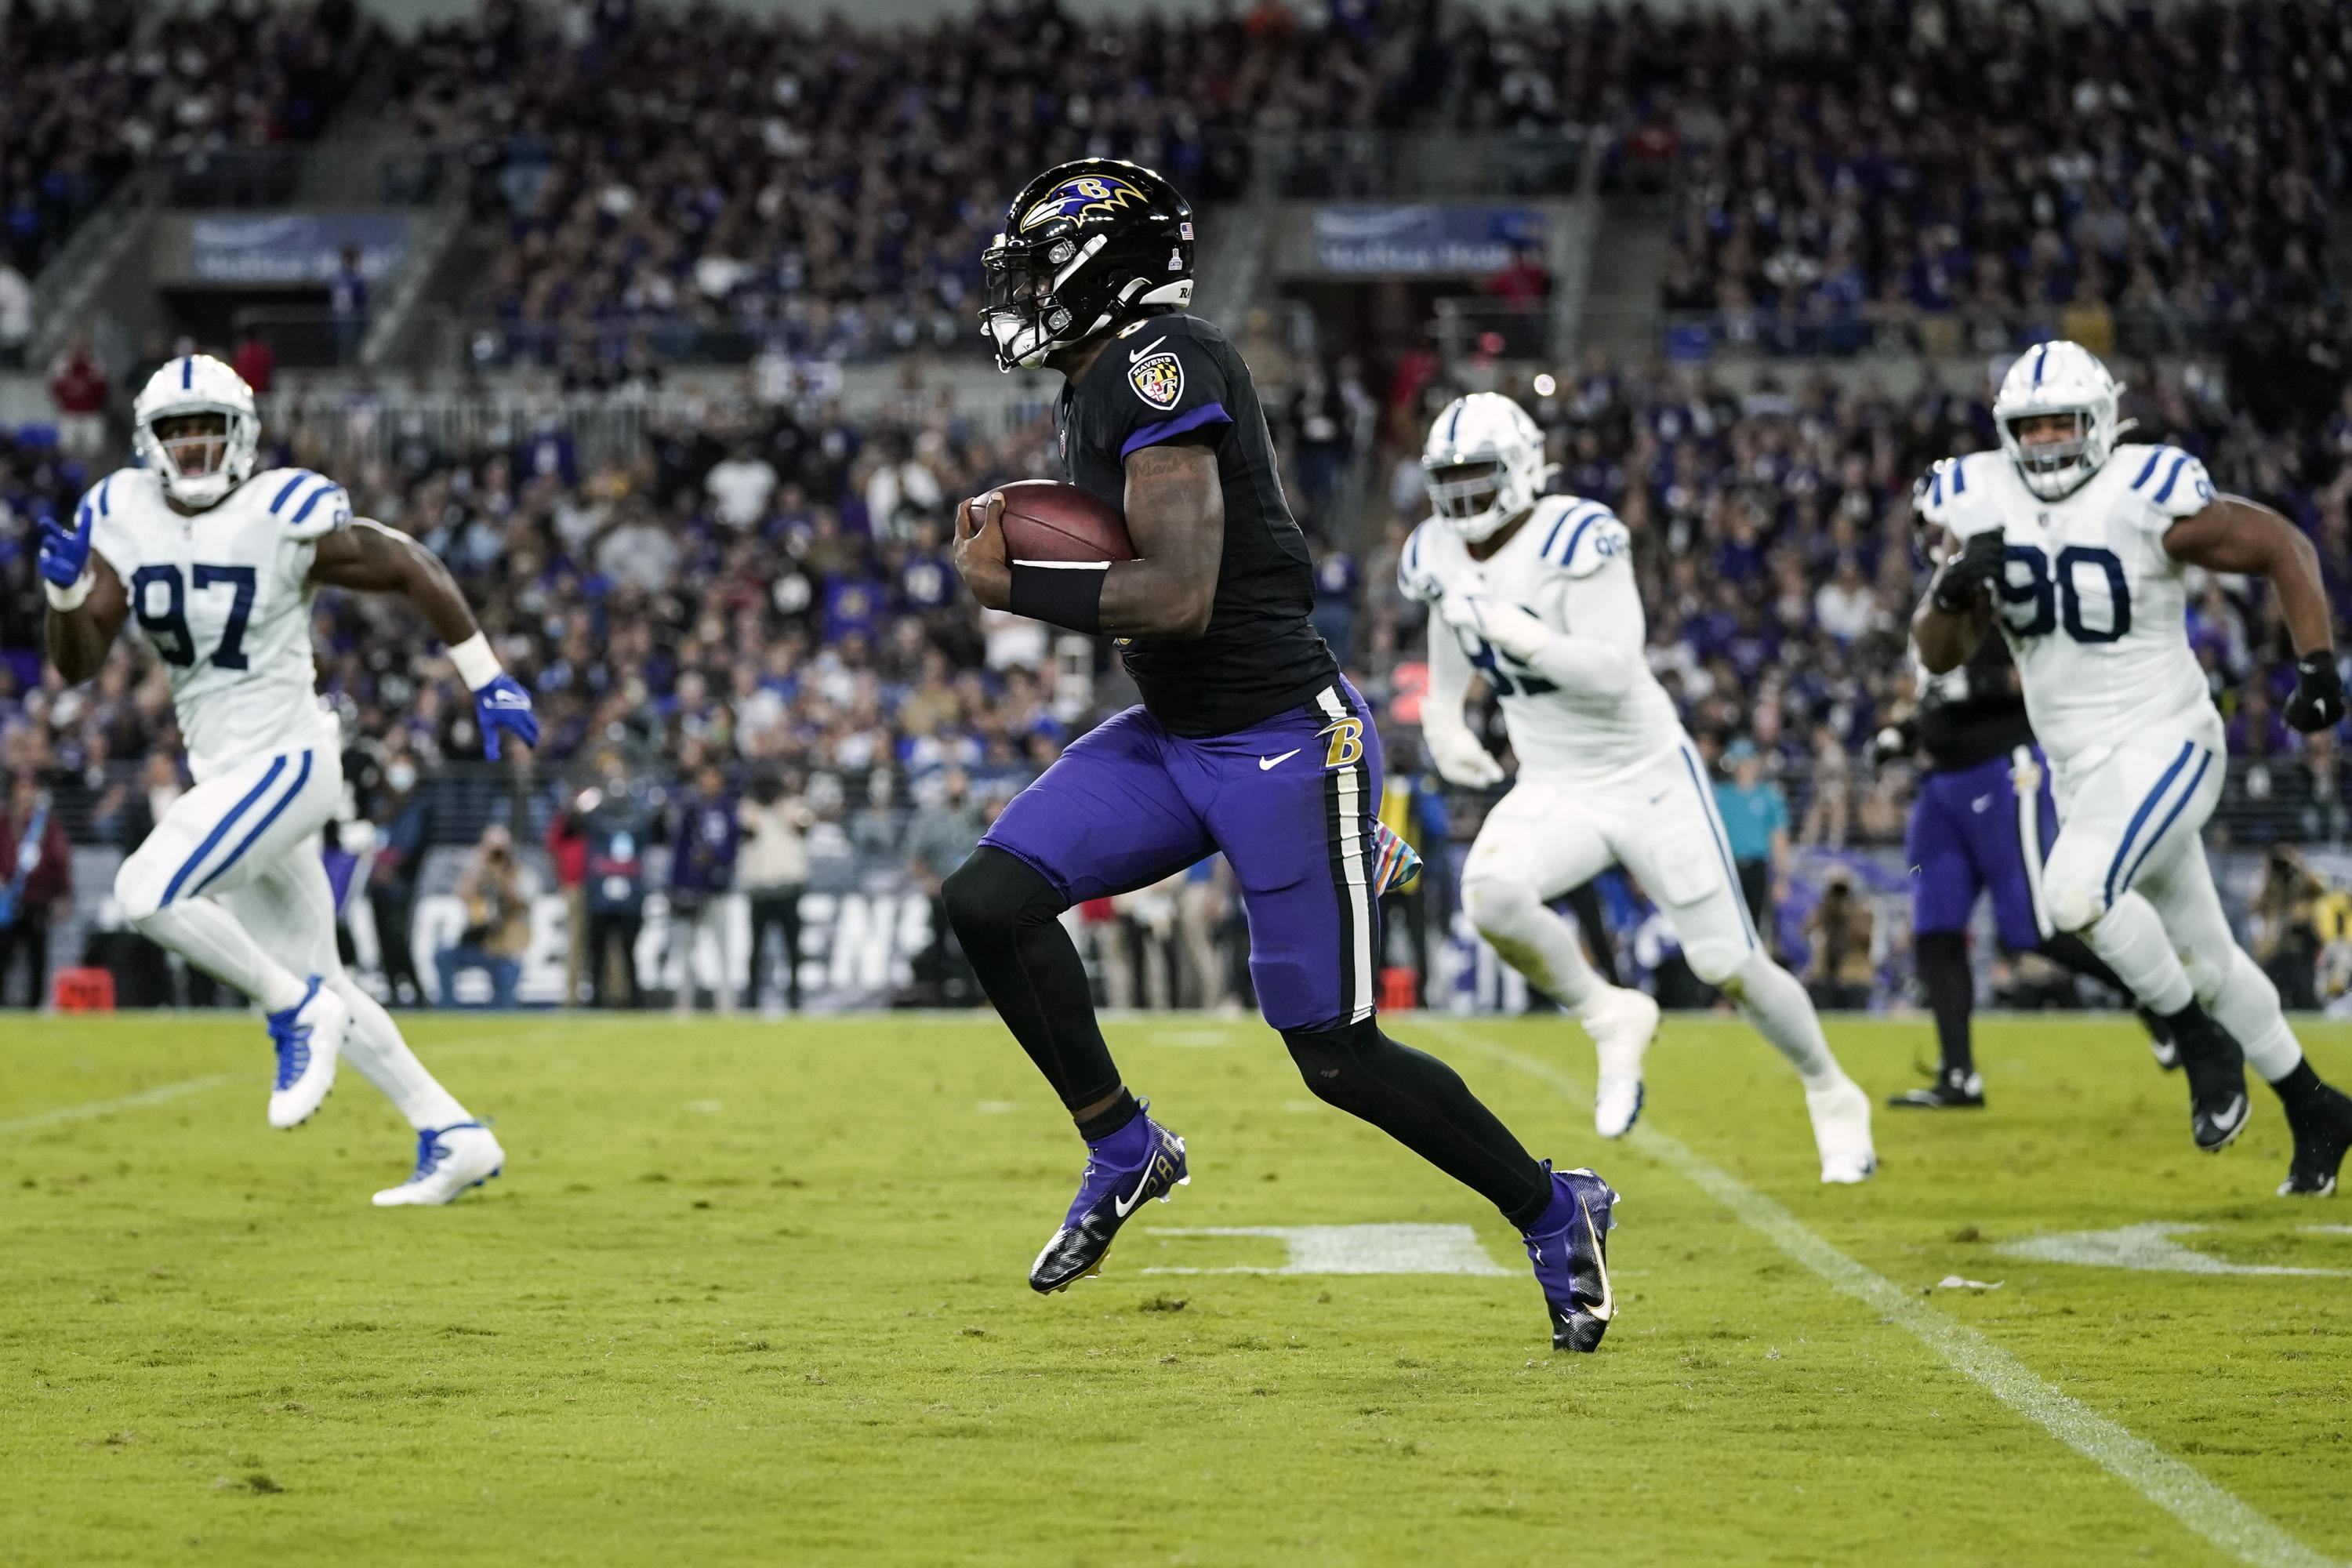 Jackson leads Ravens back to 31-25 OT win over Colts - Associated Press